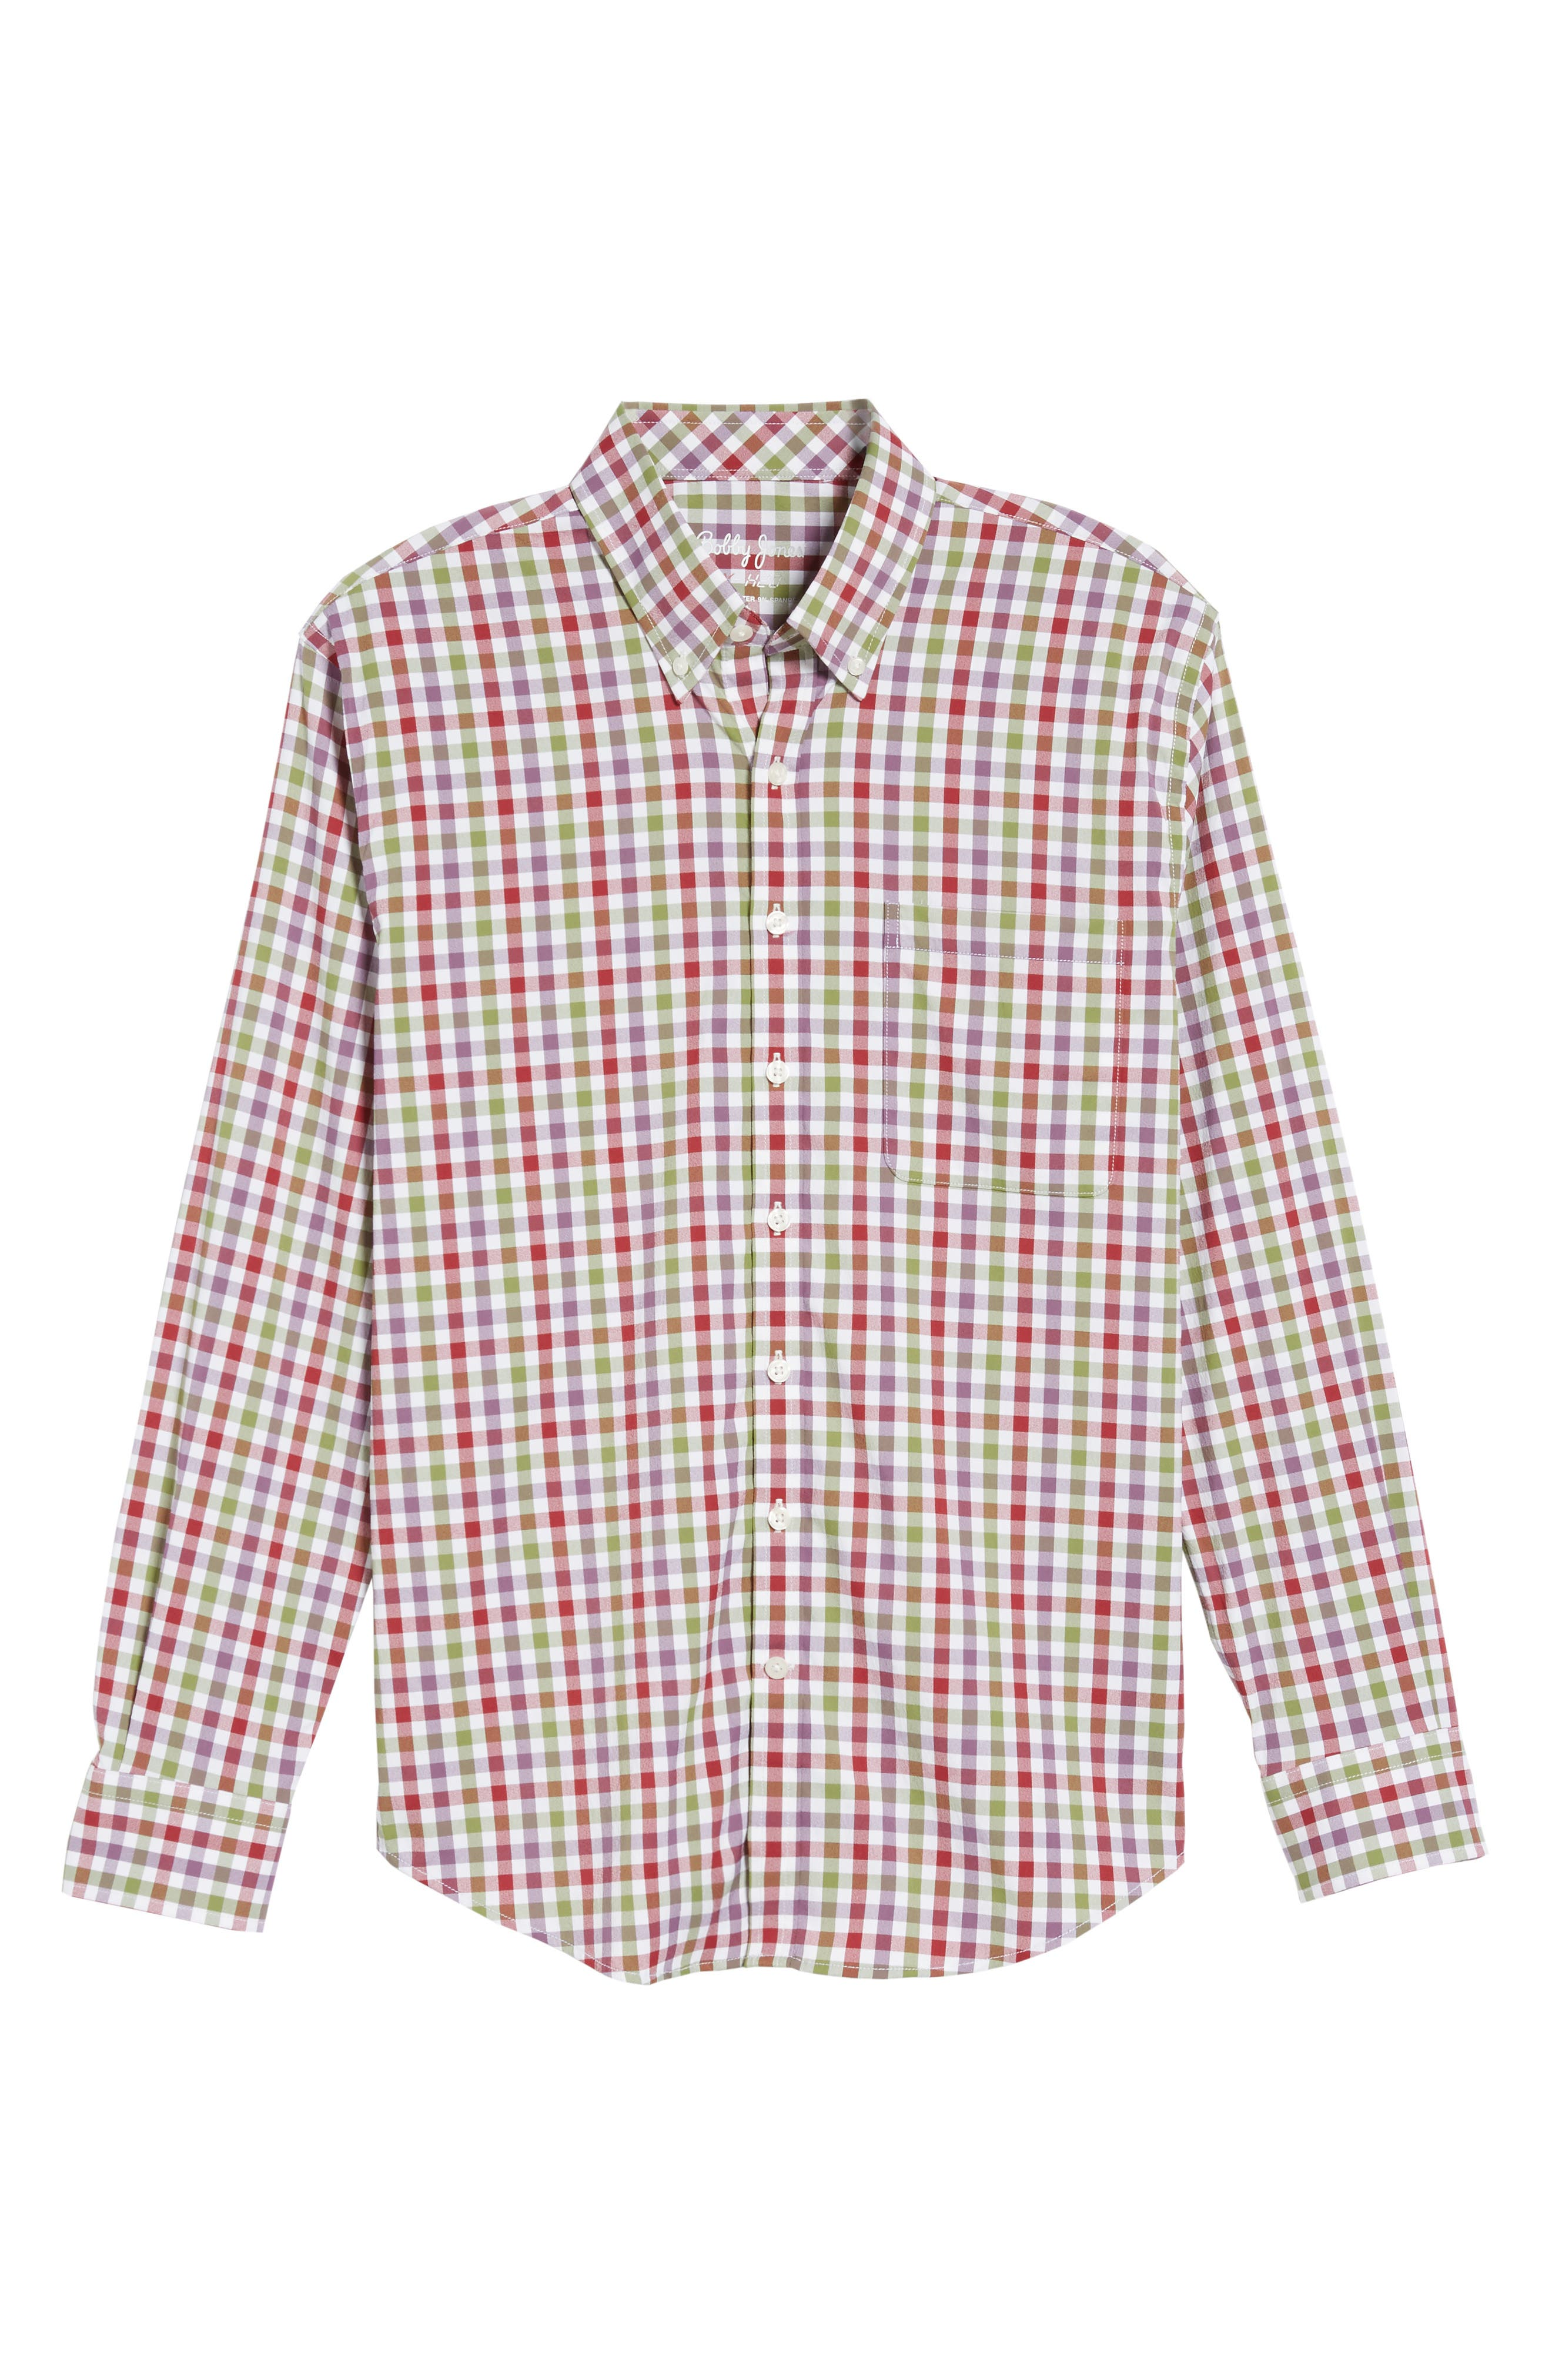 Autumn Check Easy Care Sport Shirt,                             Alternate thumbnail 6, color,